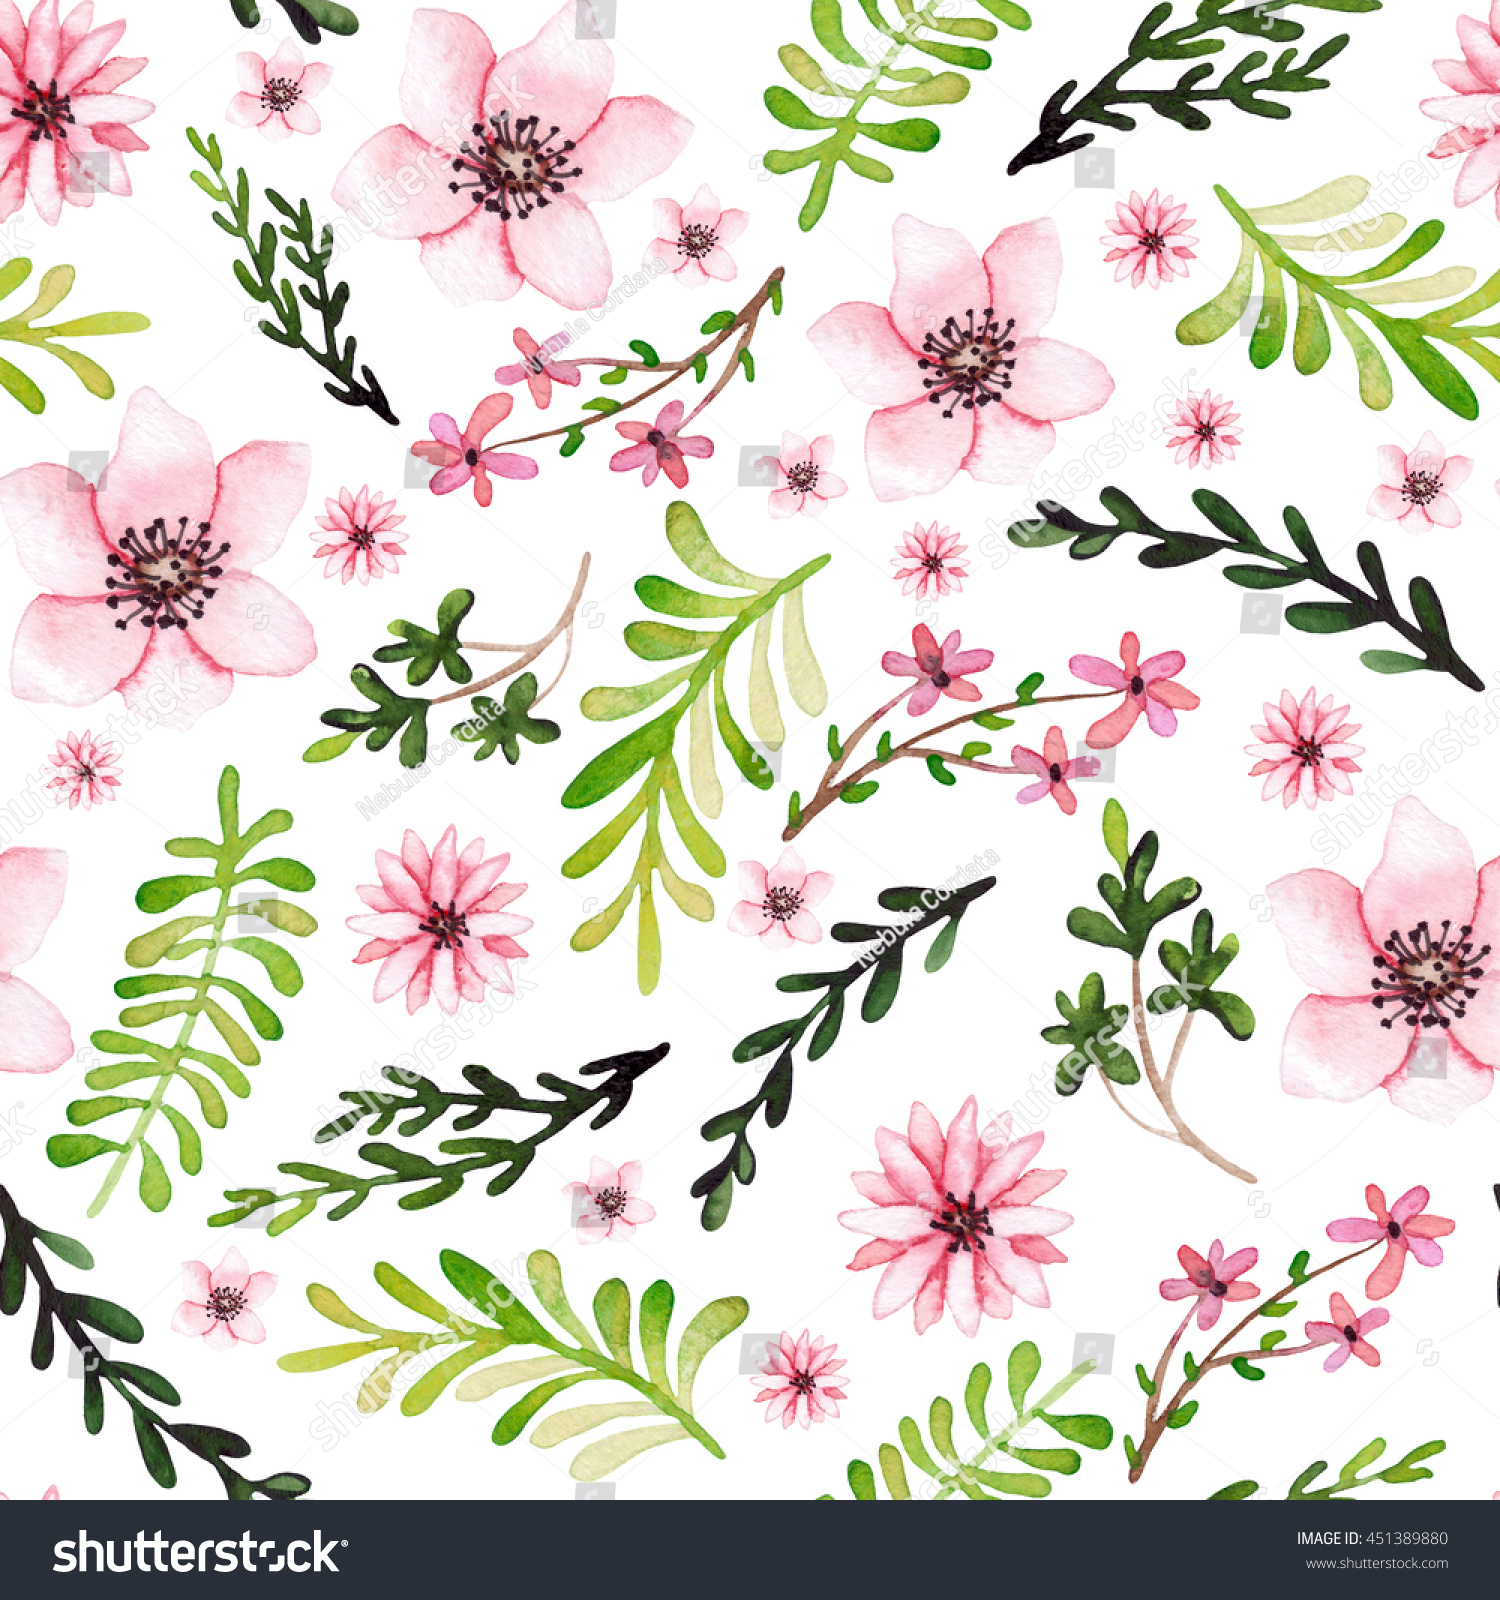 Watercolor Light Pink Flowers And Bright Green Leaves Seamless